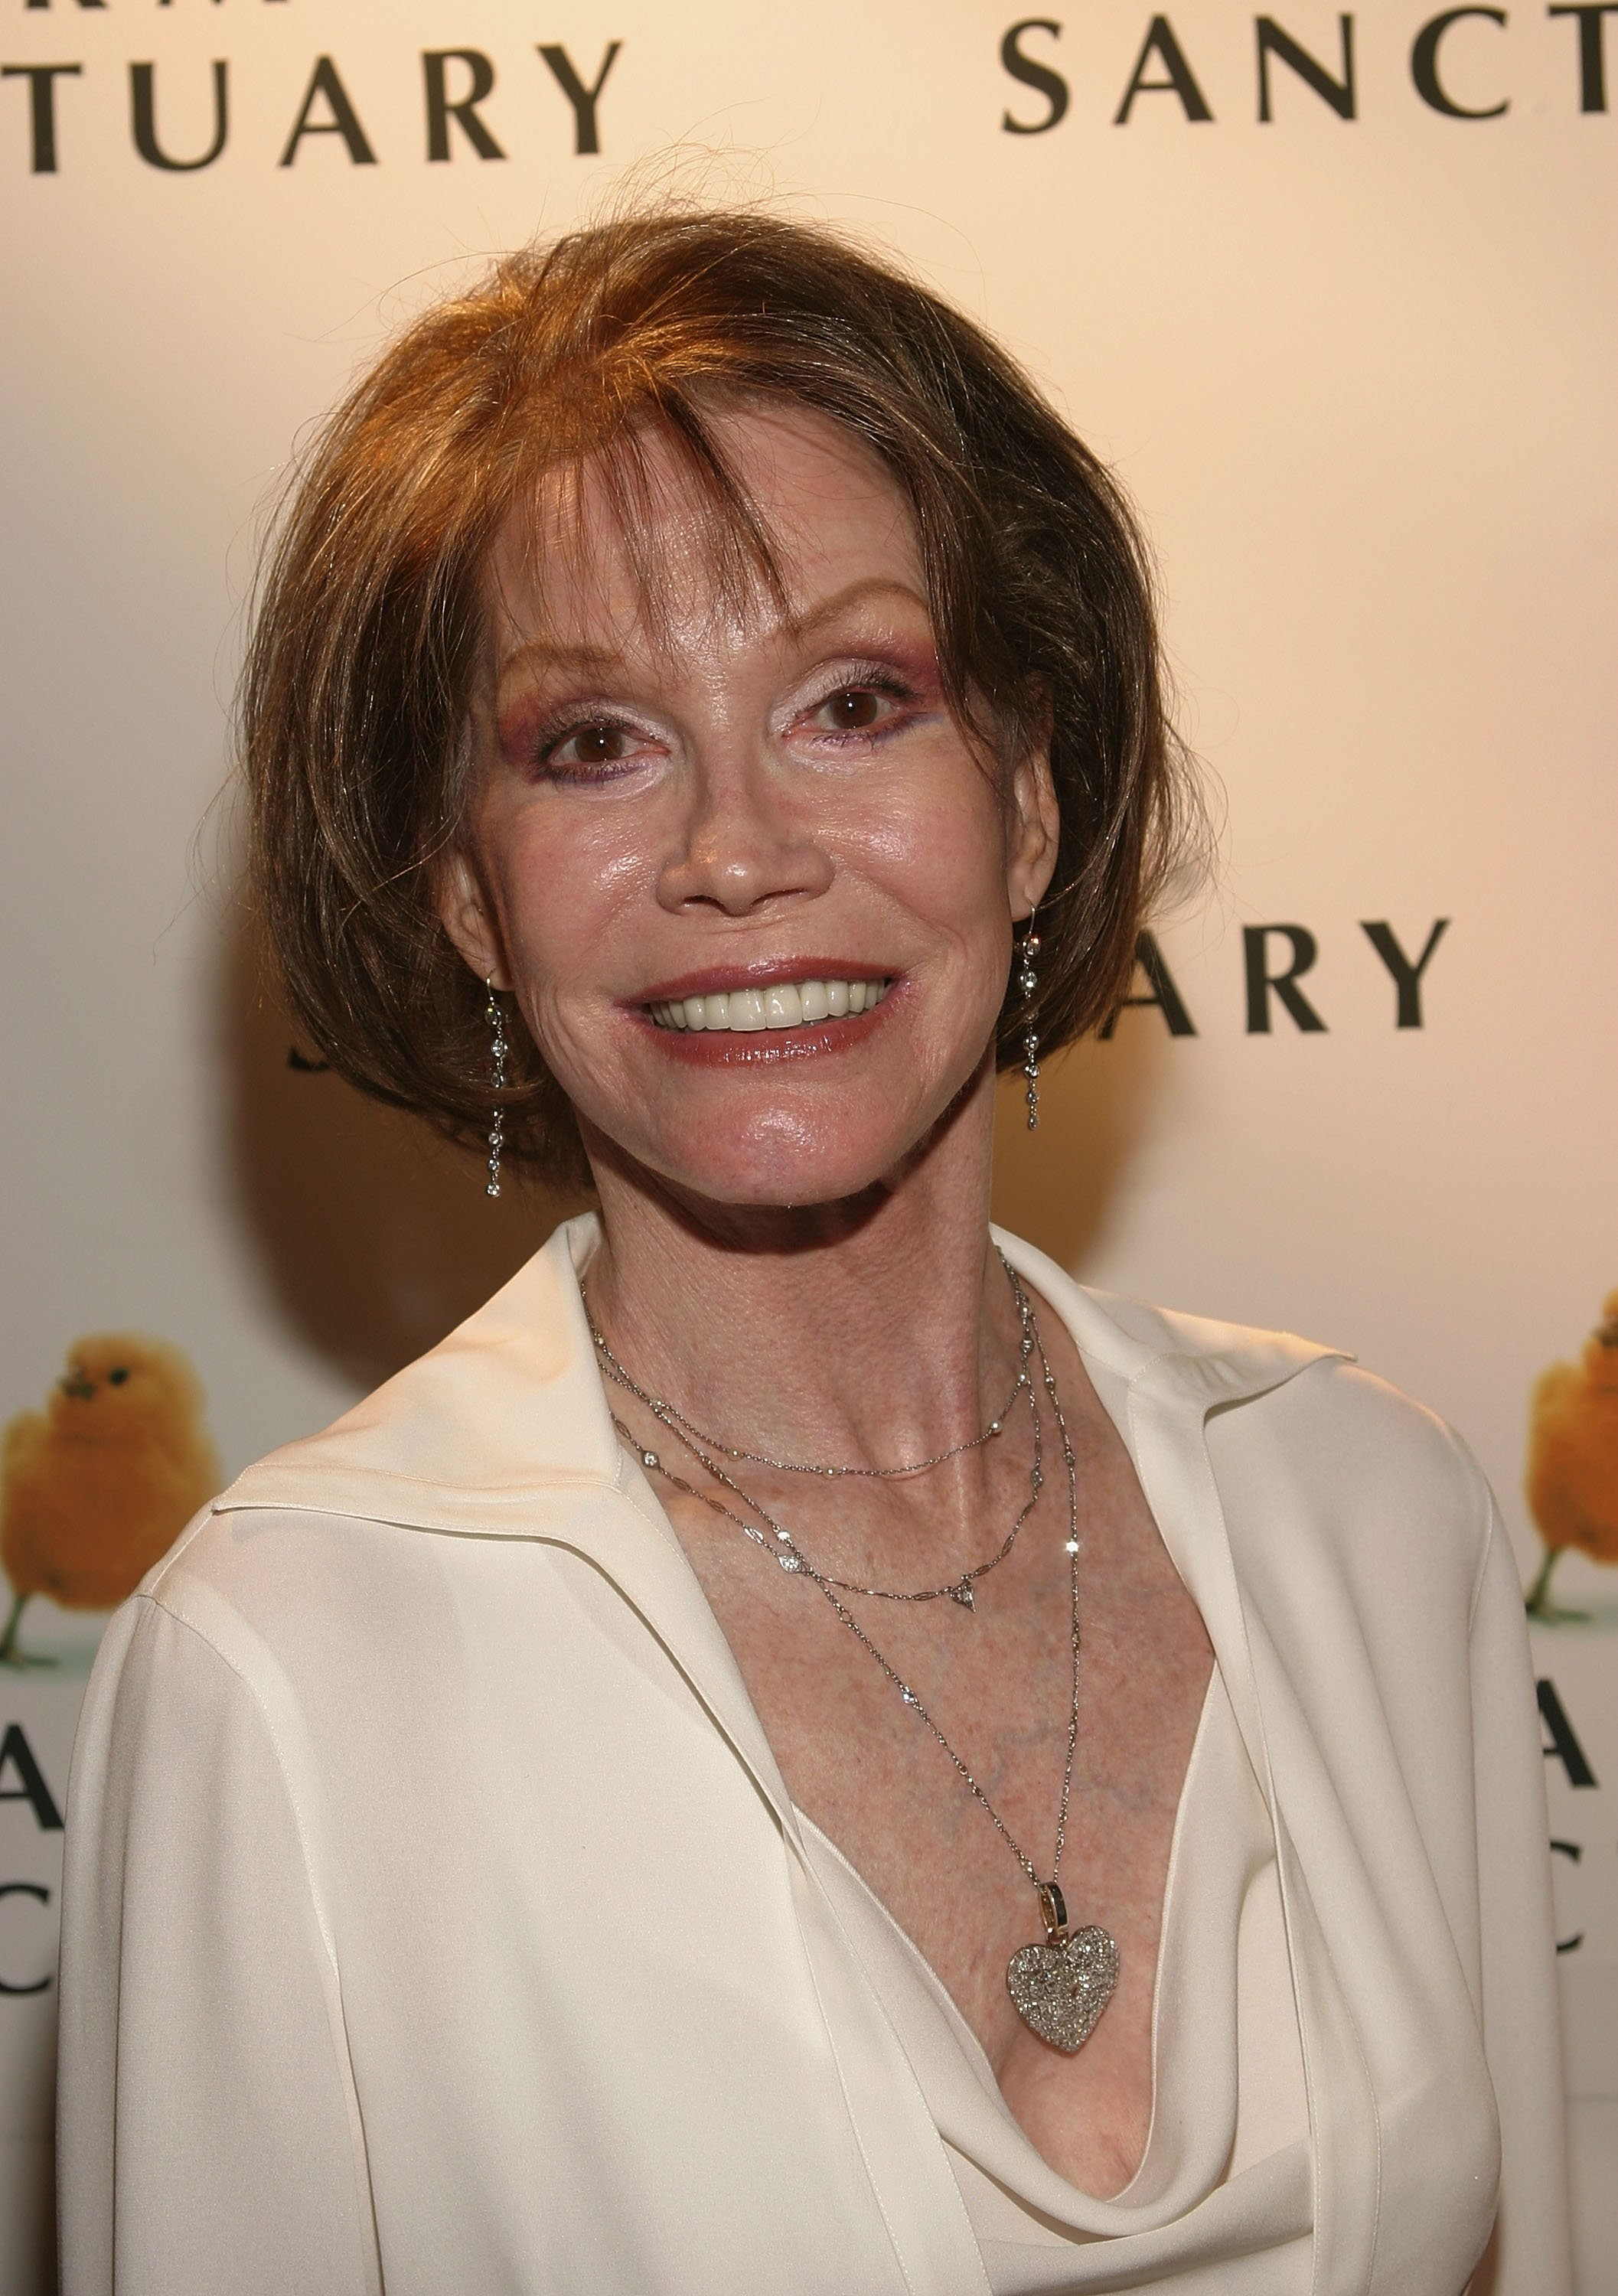 Mary Tyler Moore attends the Farm Sanctuary Gala on May 22, 2004 | Photo: GettyImages